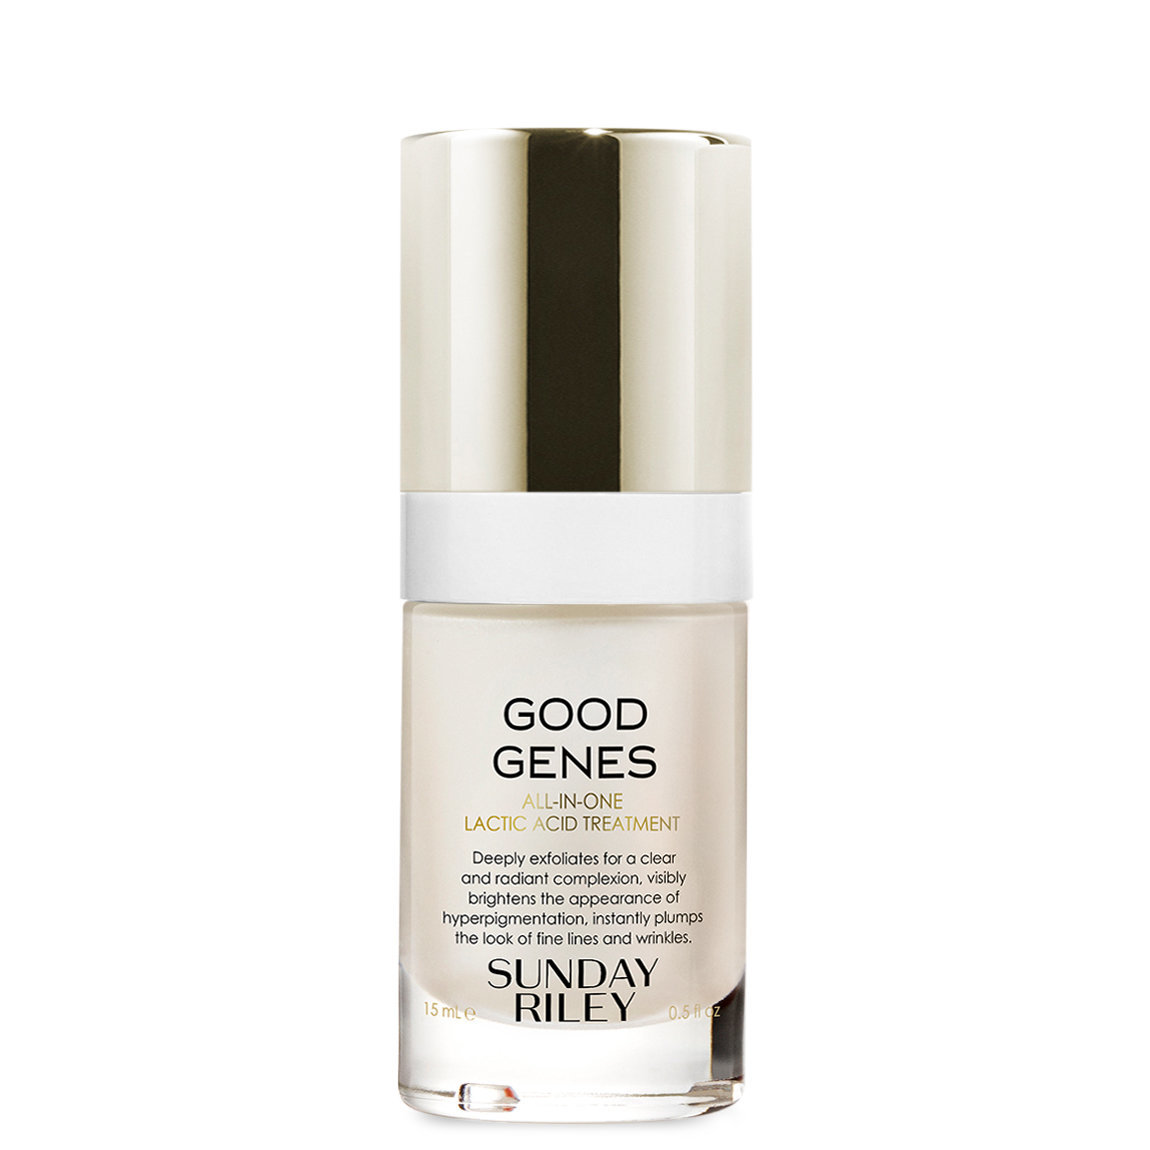 Sunday Riley Good Genes All-In-One Lactic Acid Treatment 15 ml alternative view 1 - product swatch.